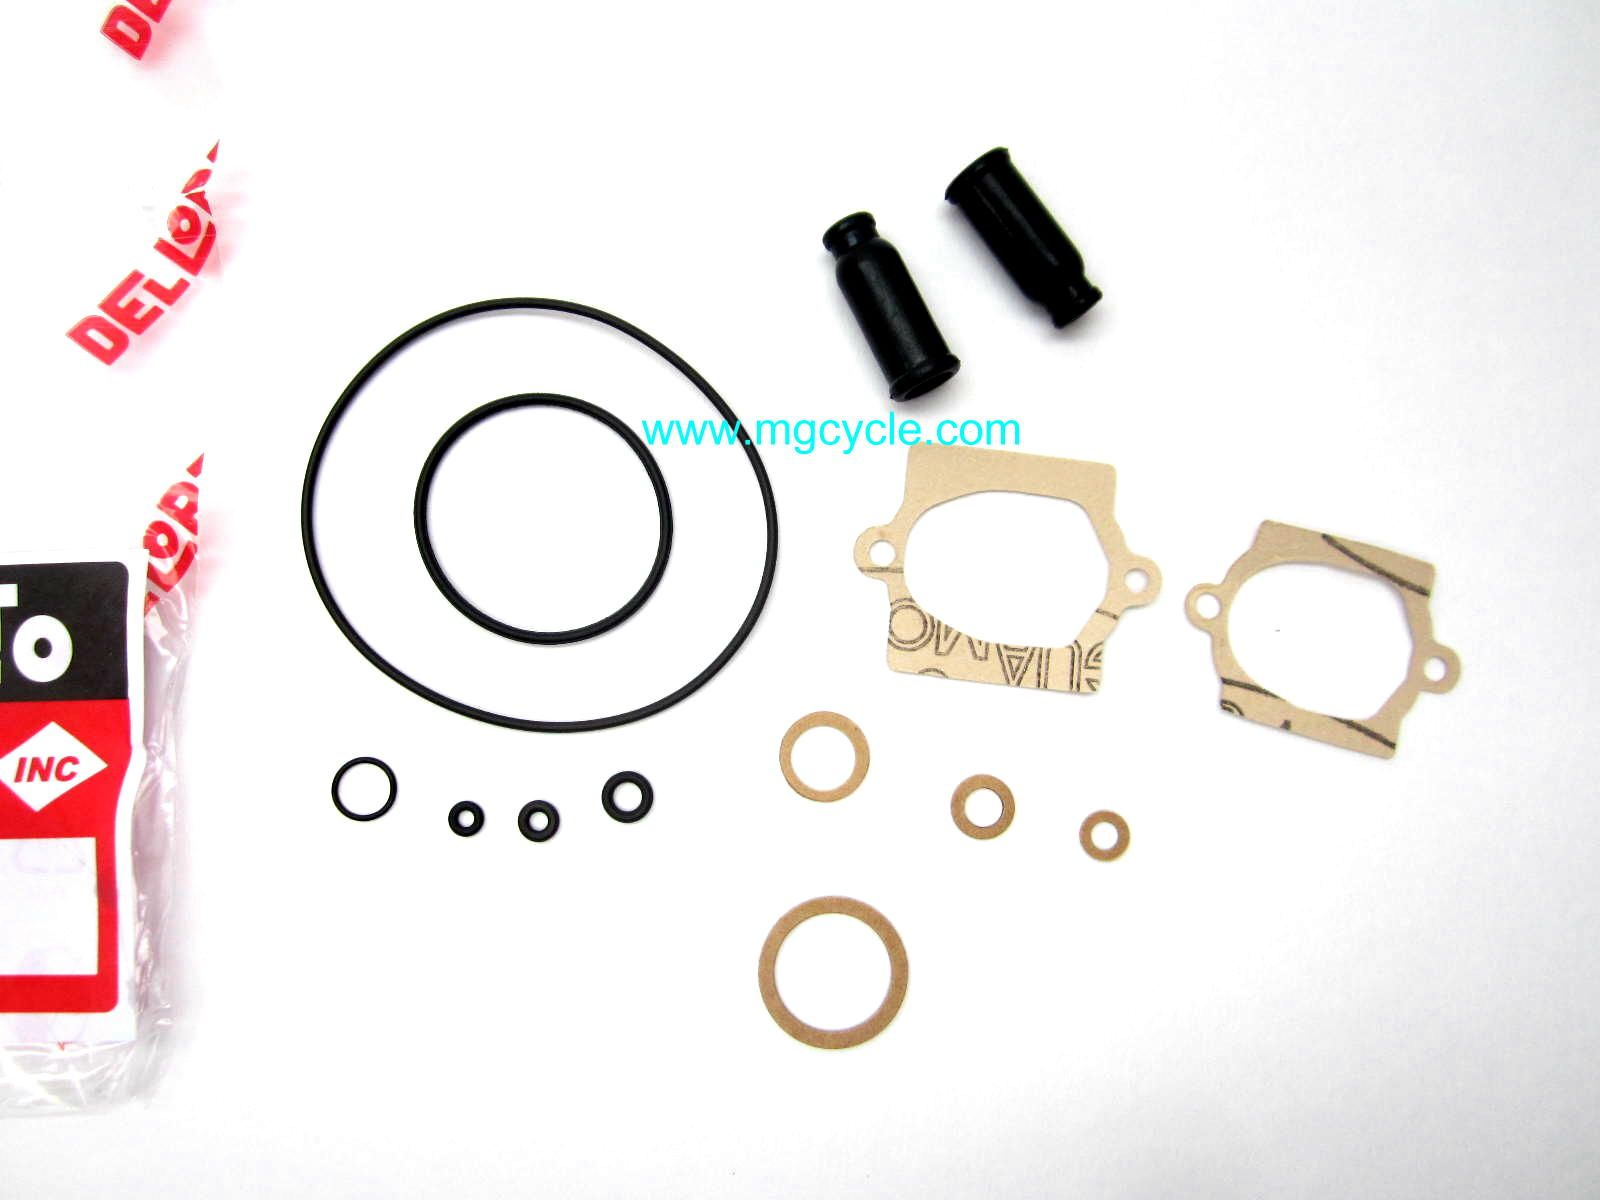 Dellorto gasket kit, VHB carburator, 29-30